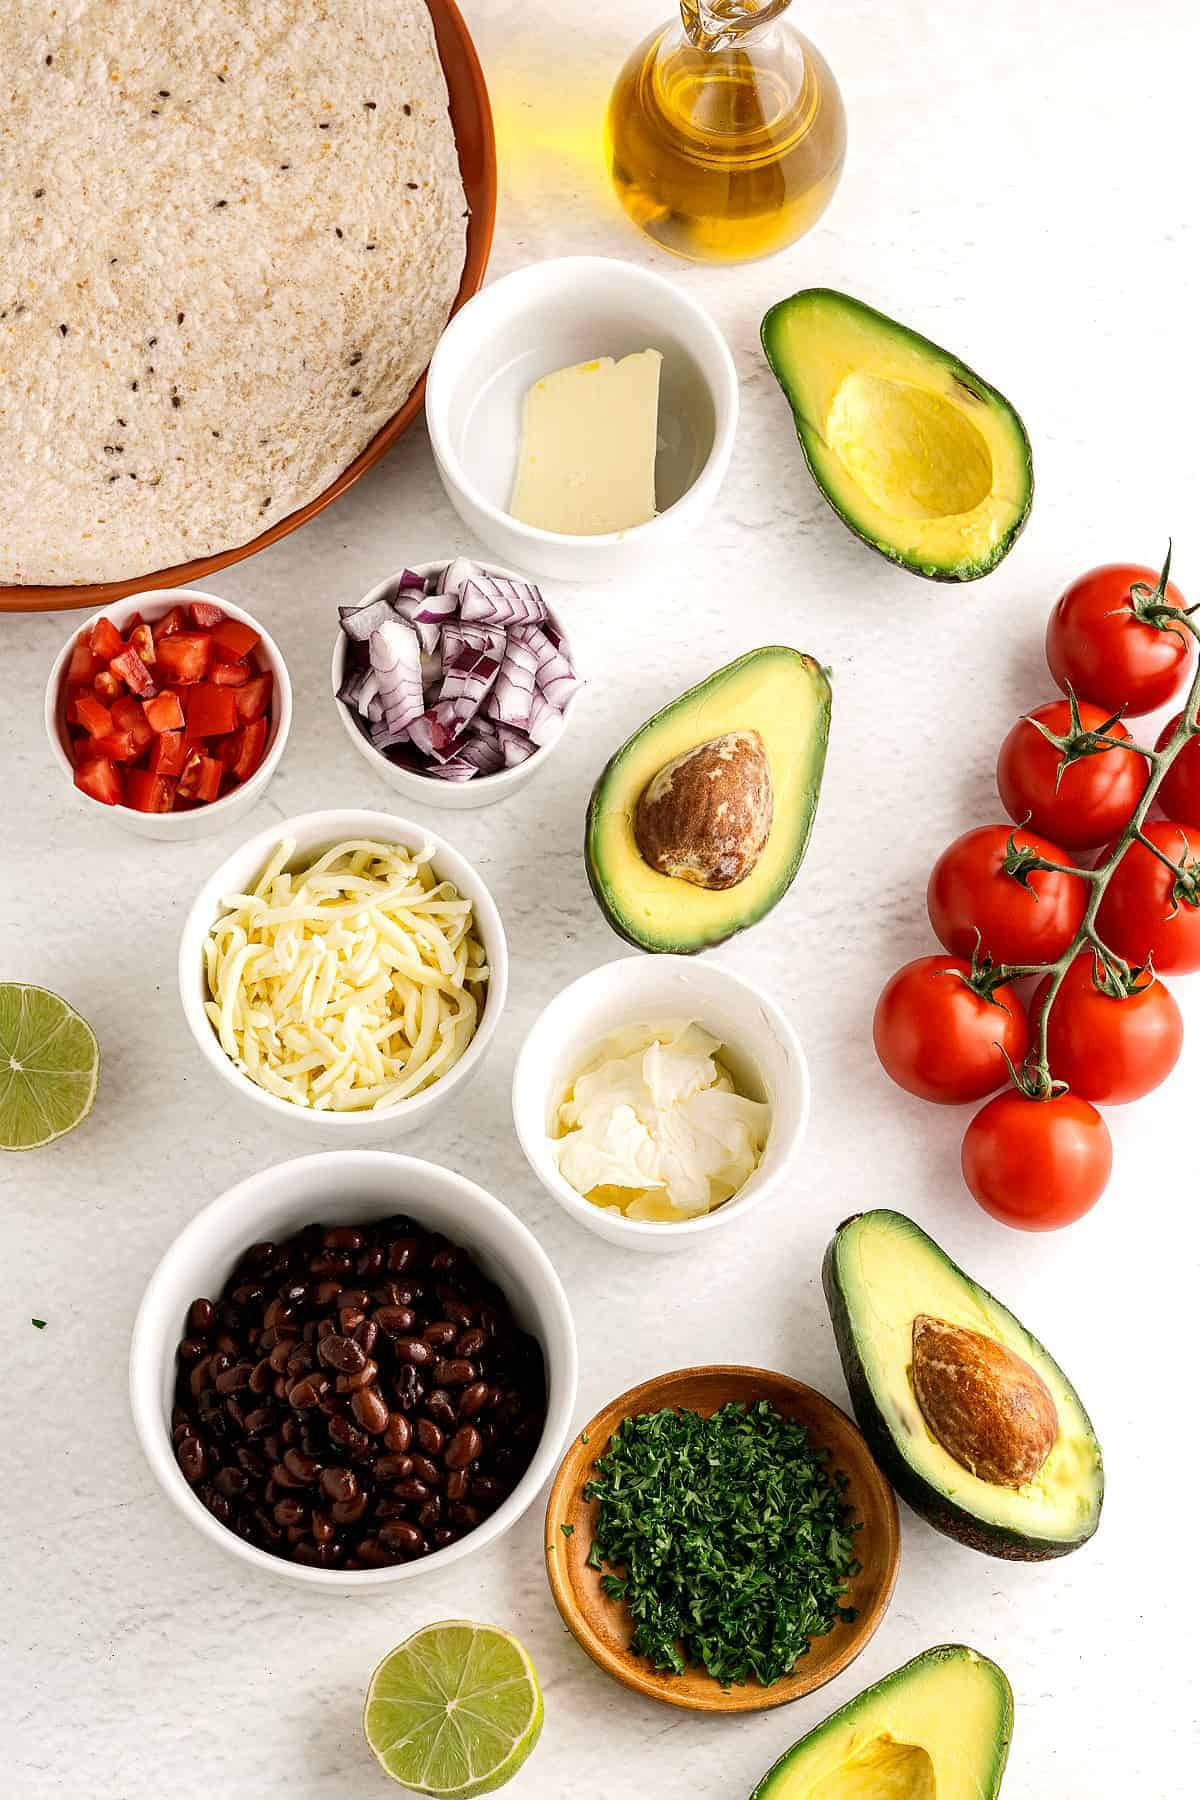 All of the ingredients for quesadillas vegan style.